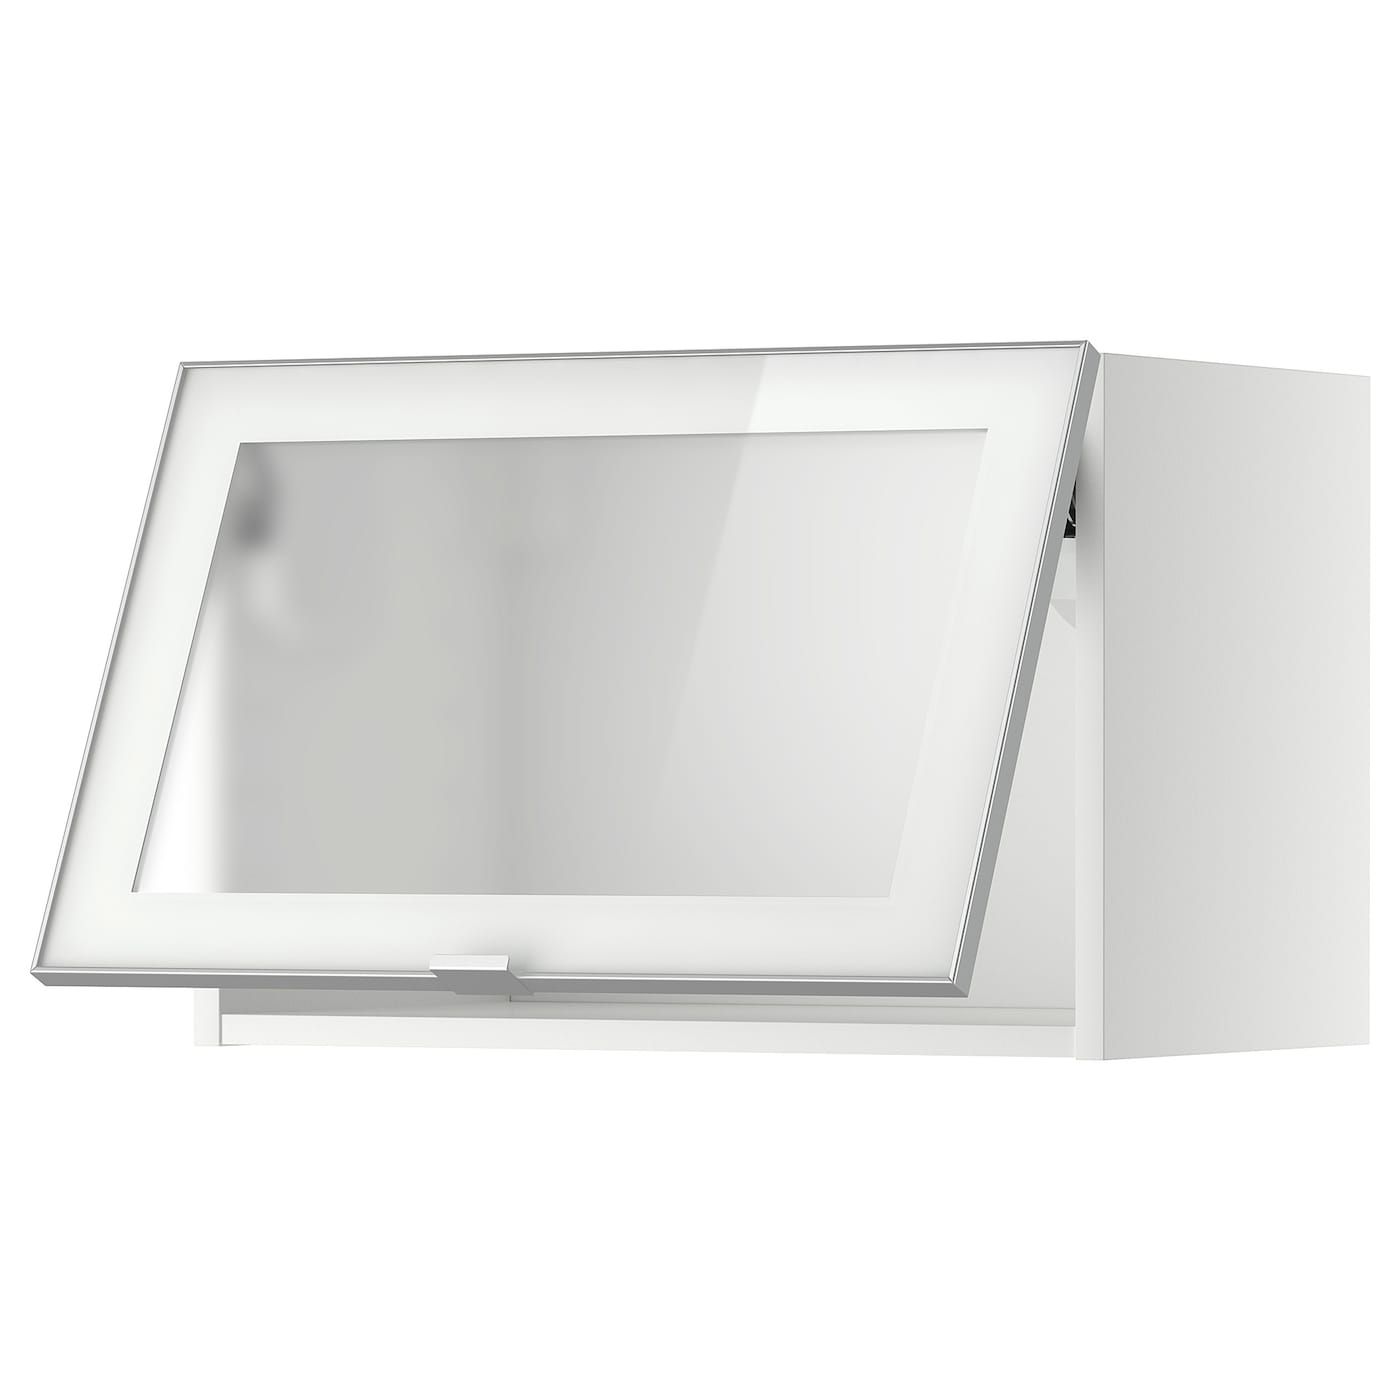 METOD Wall cab horizontal w glass door - white, Jutis frosted glass 14x14 cm